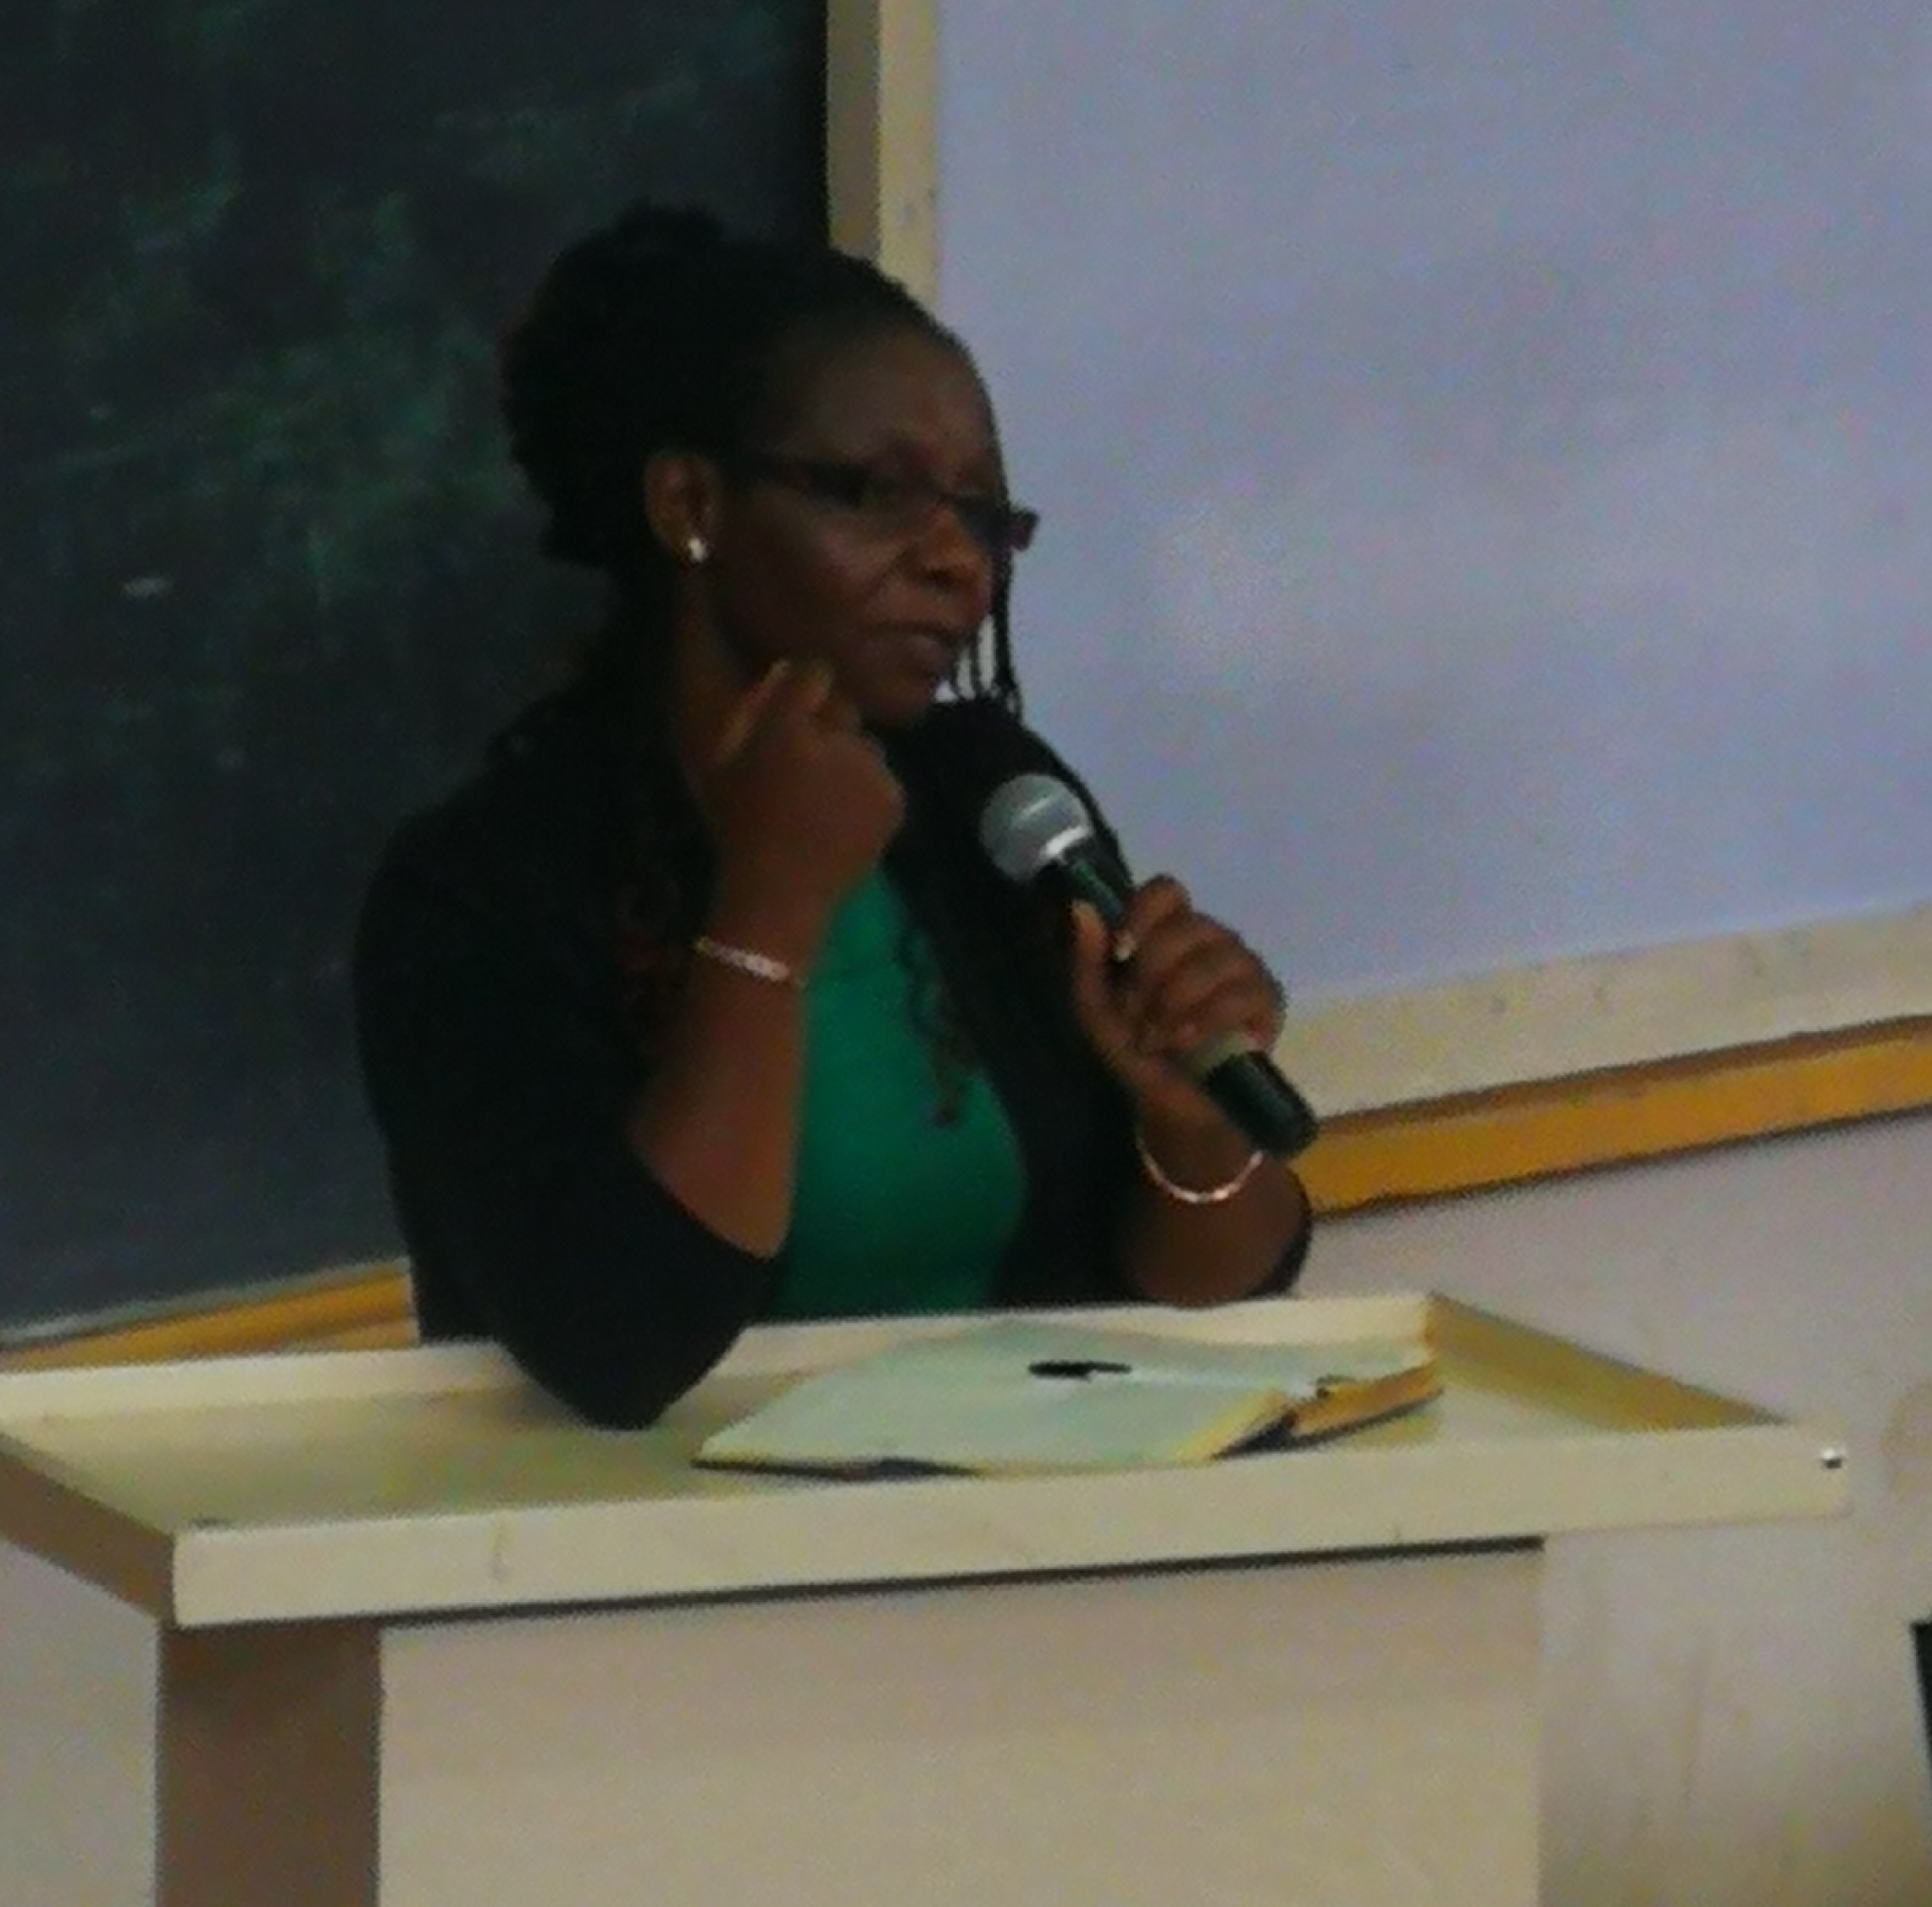 DR. RHODA GITONGA GIVING HER REMARKS ON USE OF LMS AND SMART DEVICE USE.